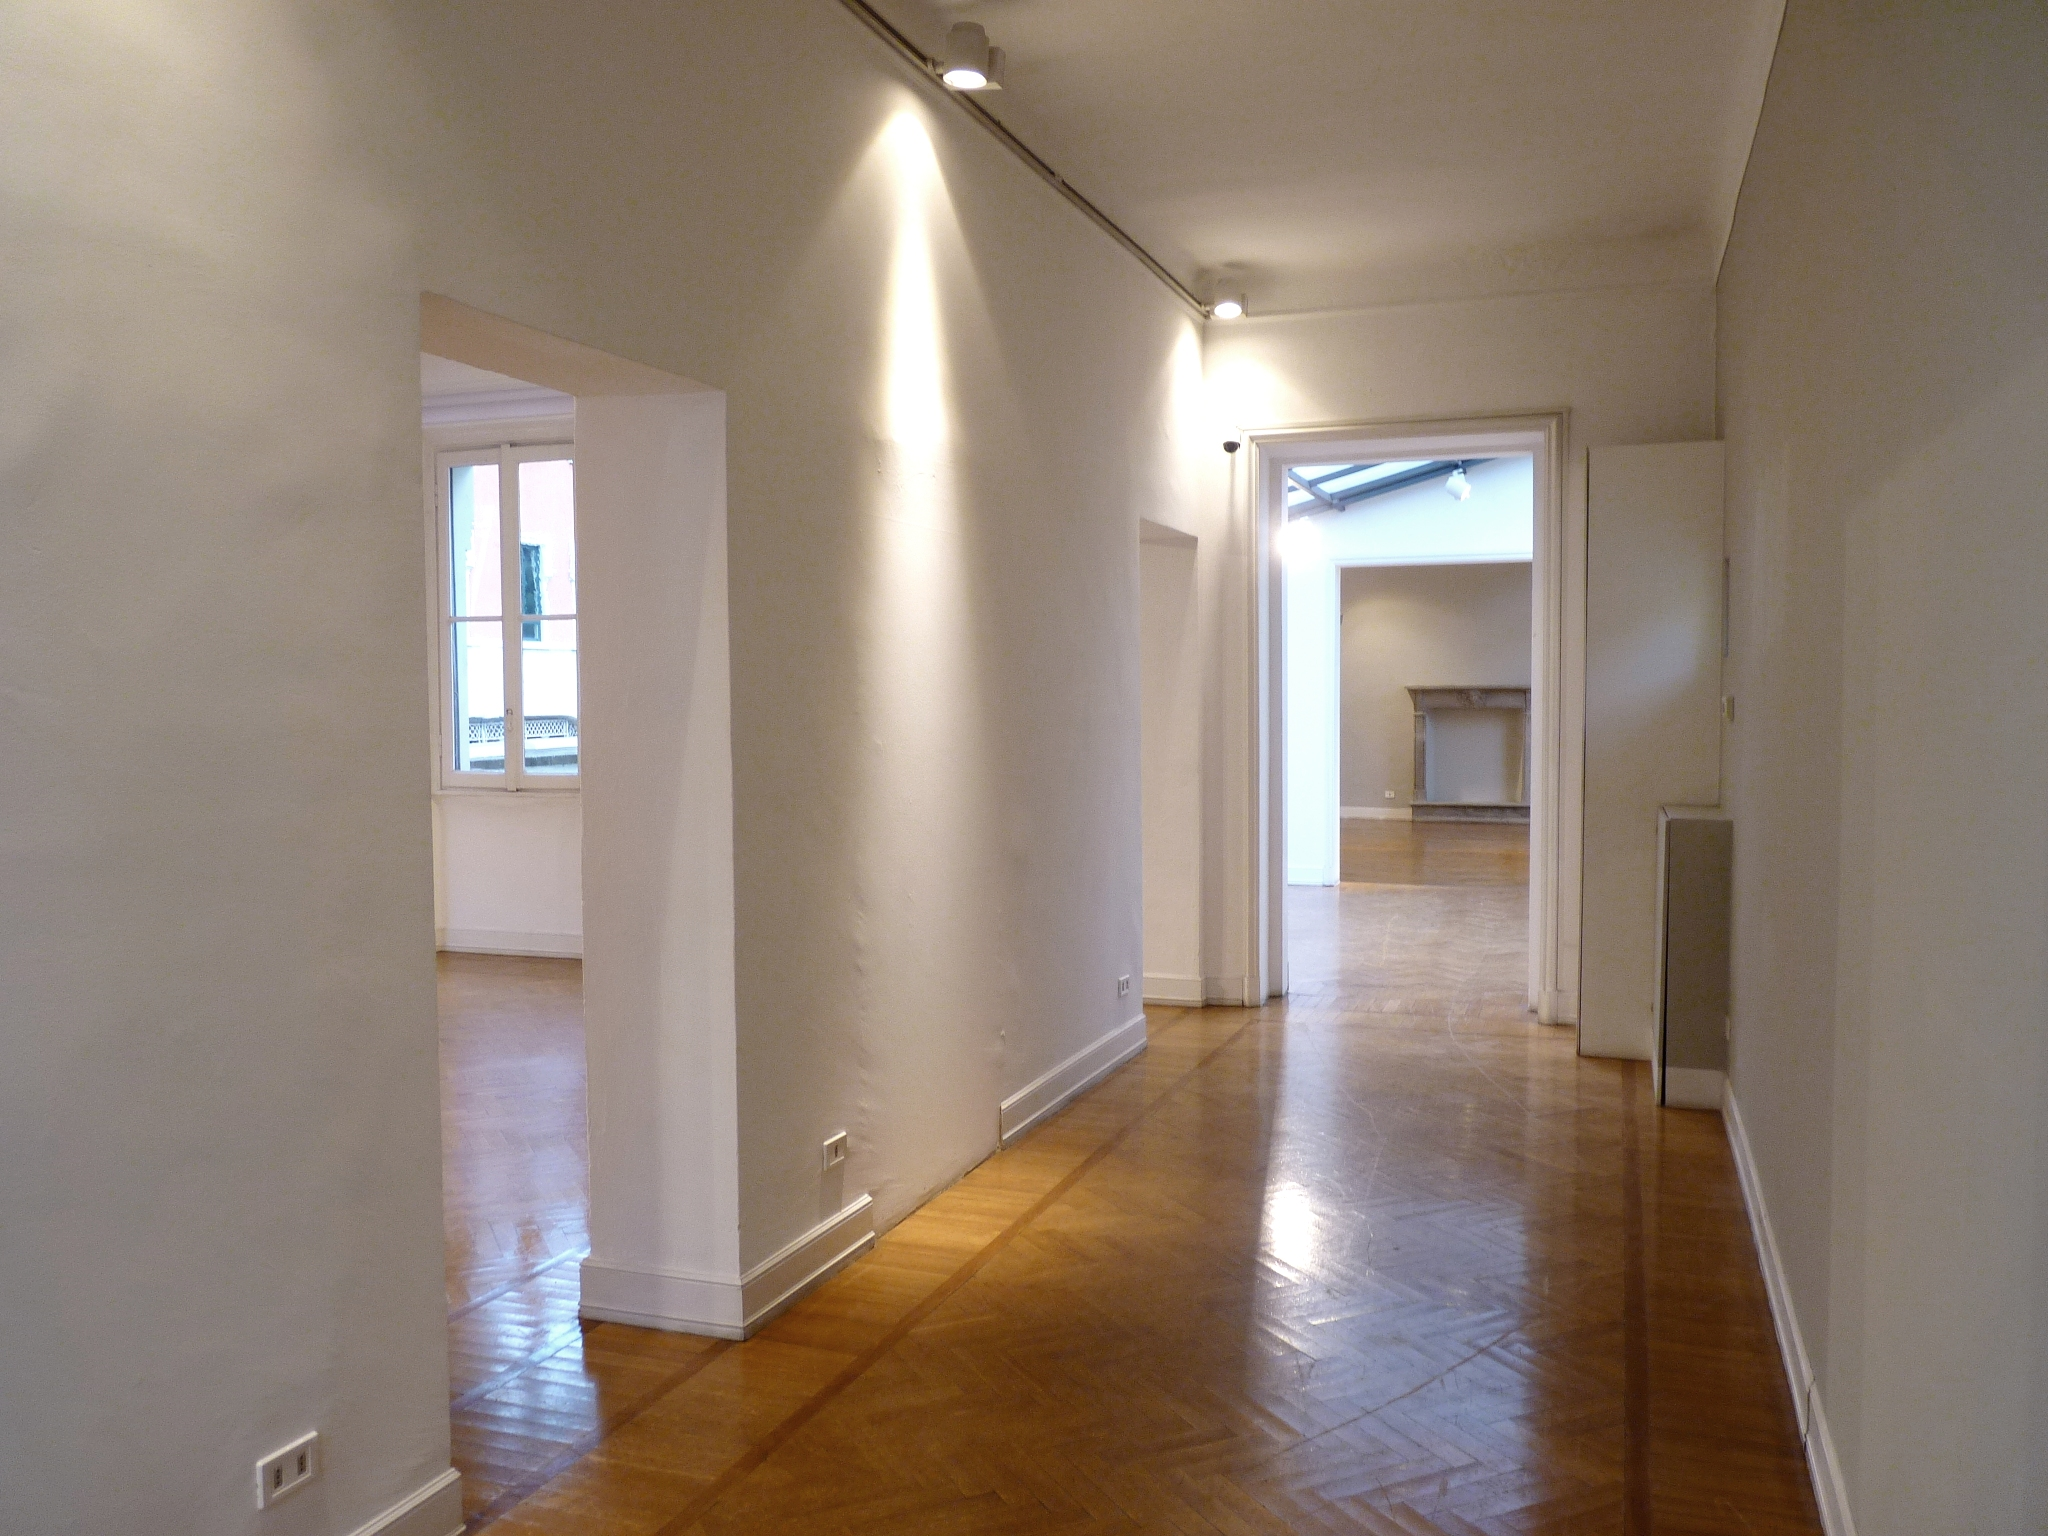 Opificio 31-Loft - Loft, Showroom di 300mq in Via Tortona 31 | location disallestita 2